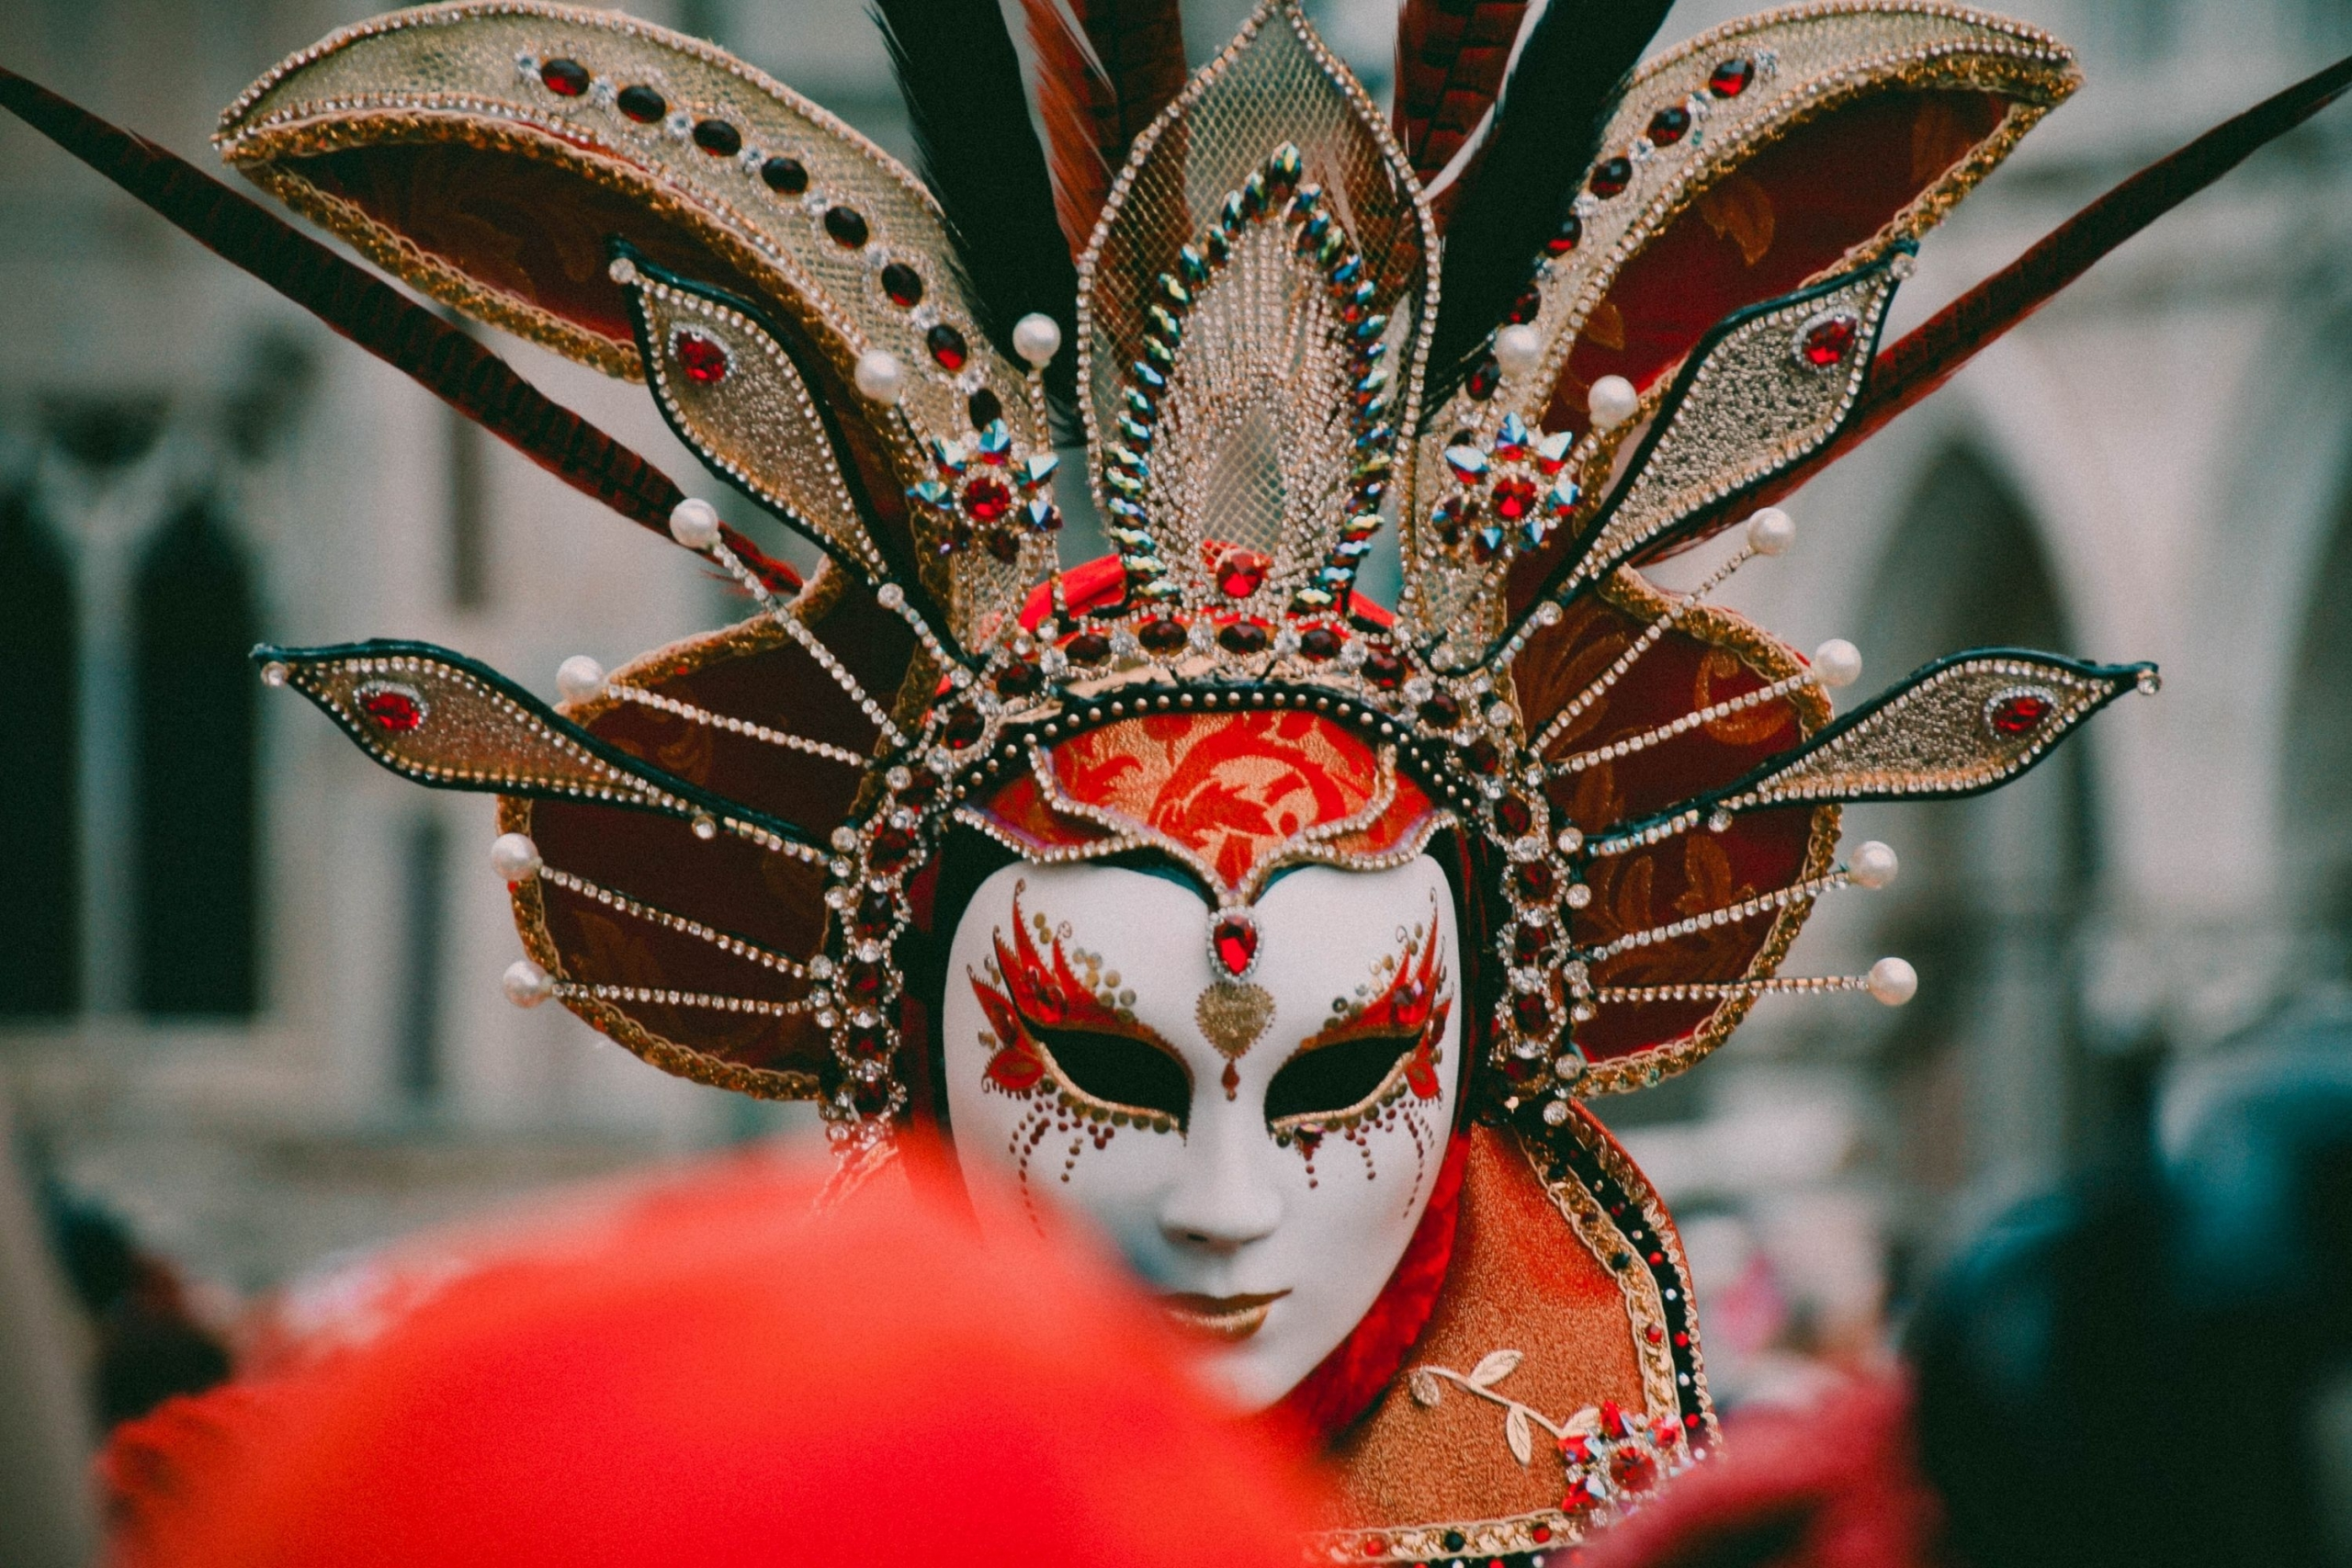 Close up of a masked woman in Mardi Gras attire